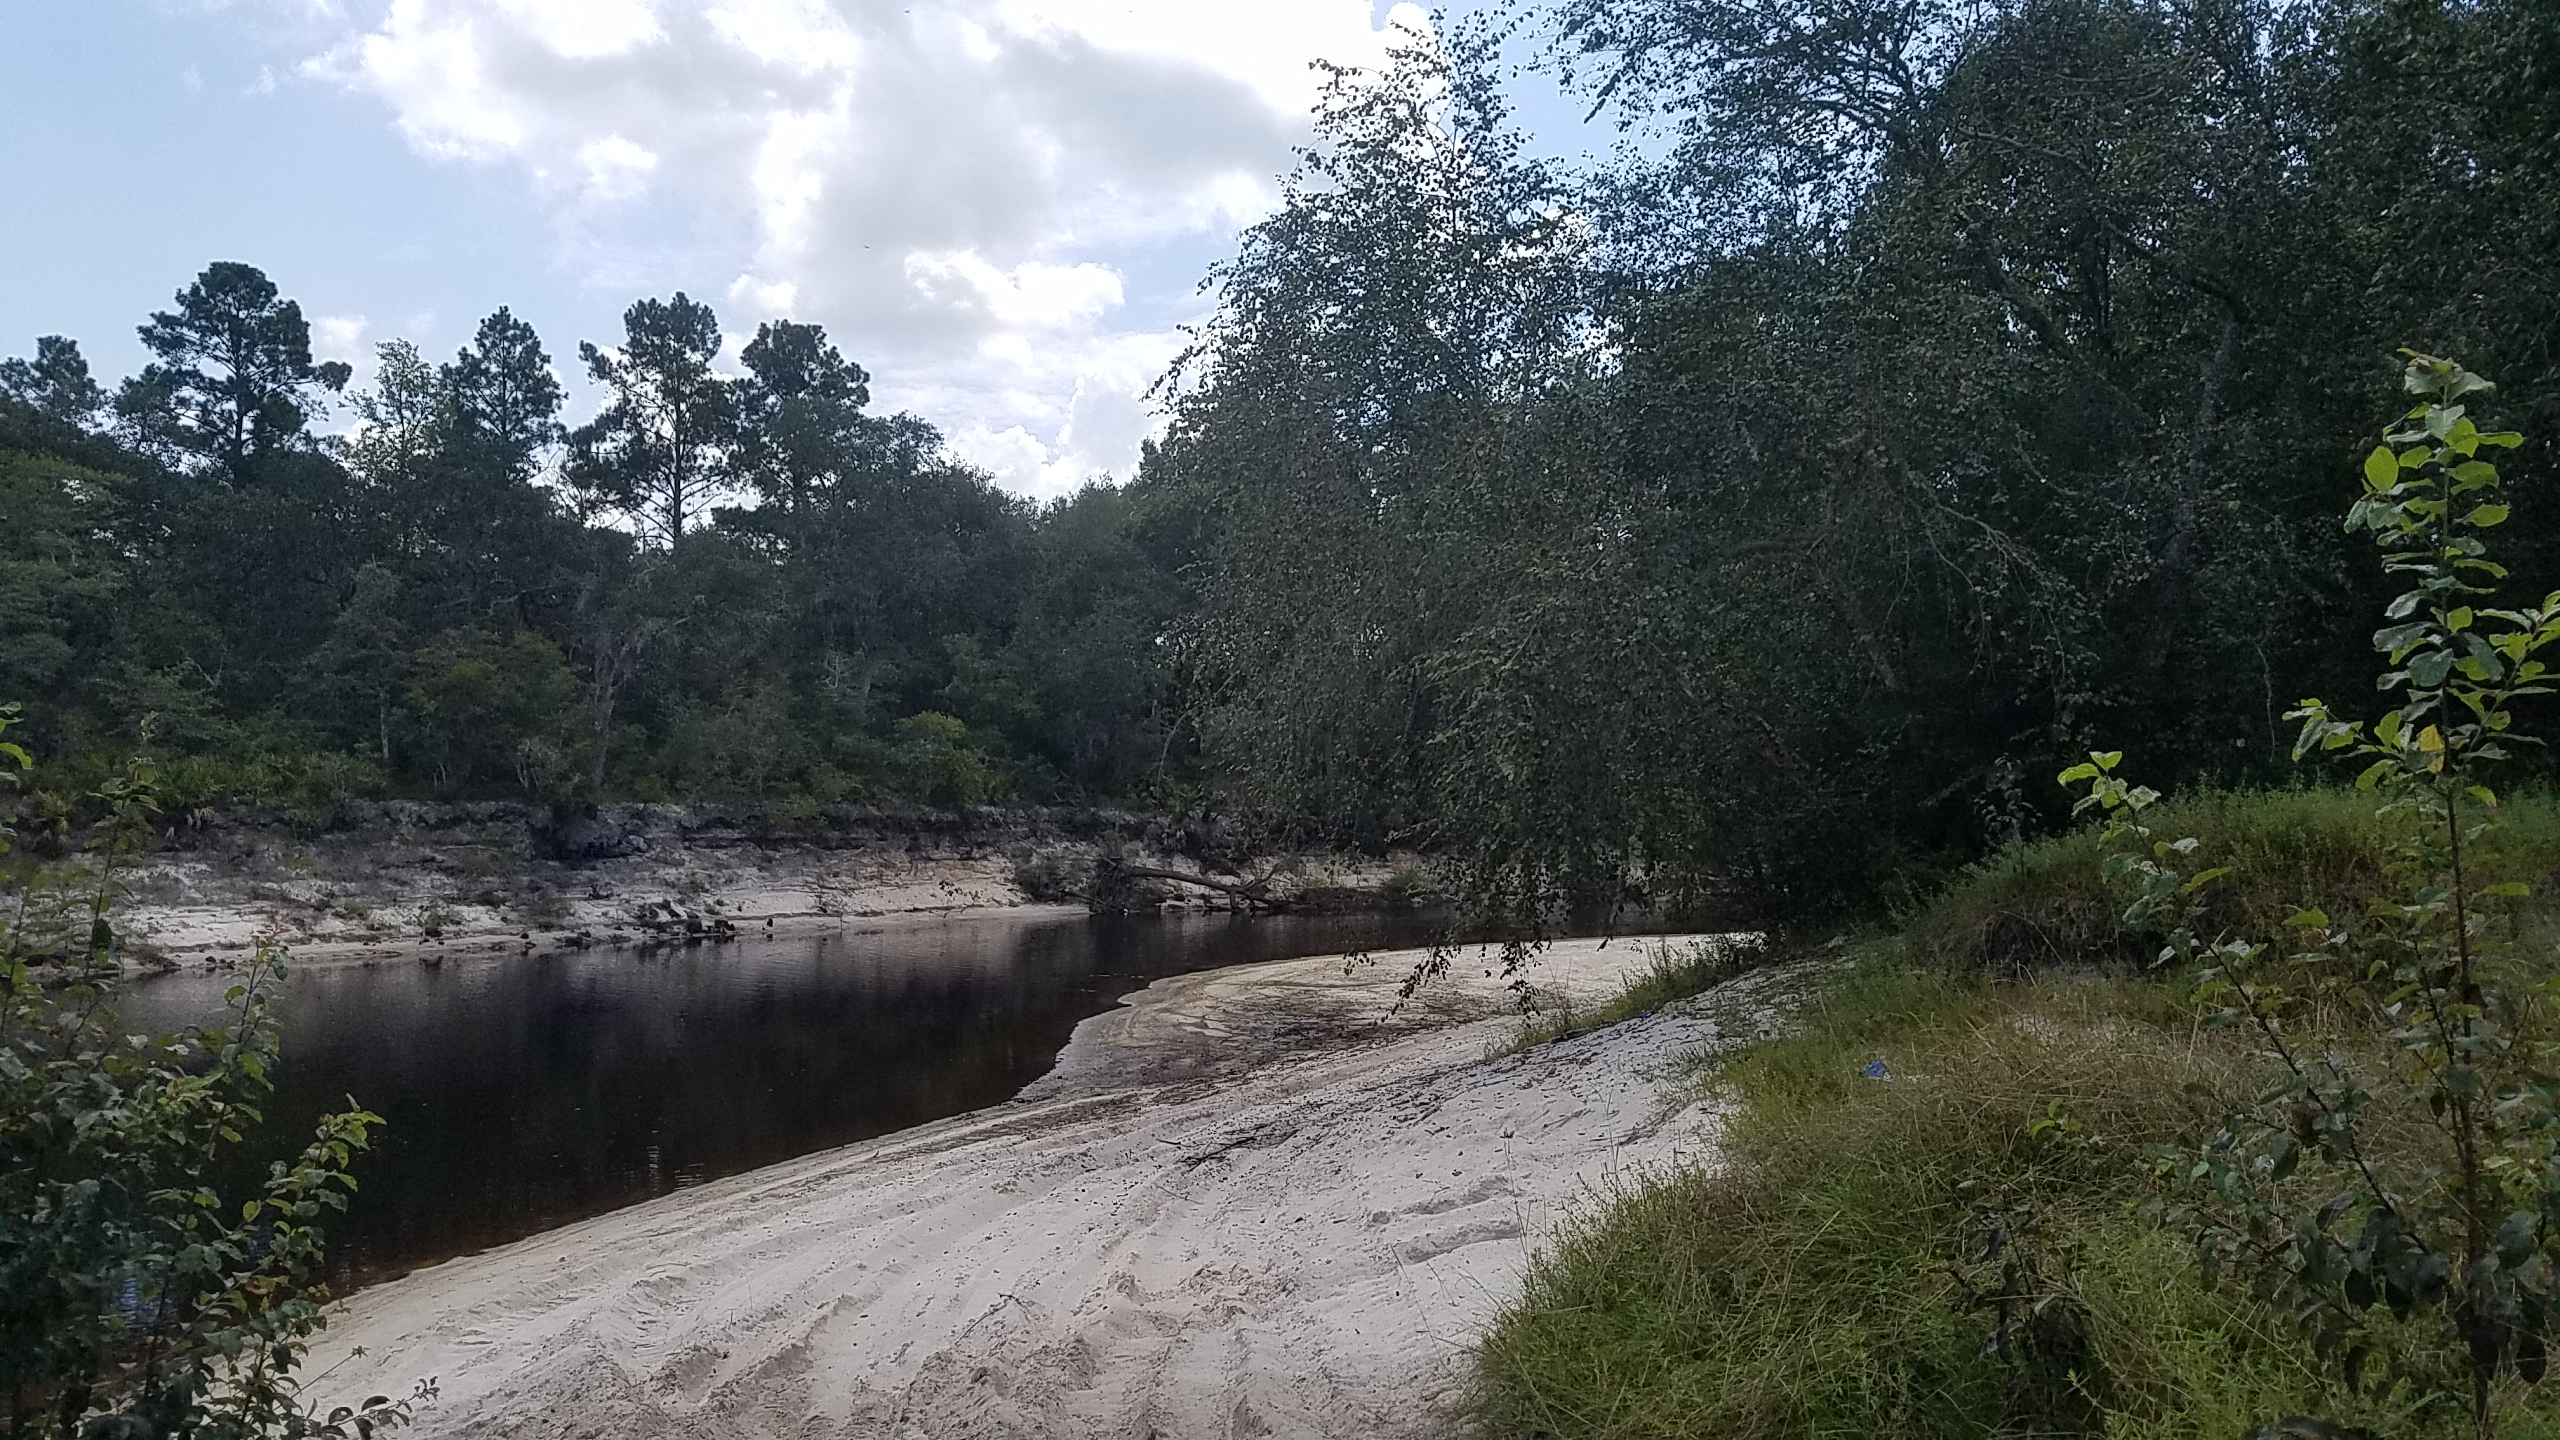 2560x1440 North river access, in Pafford's Landing, Alapaha River, by John S. Quarterman, for WWALS.net, 24 August 2017